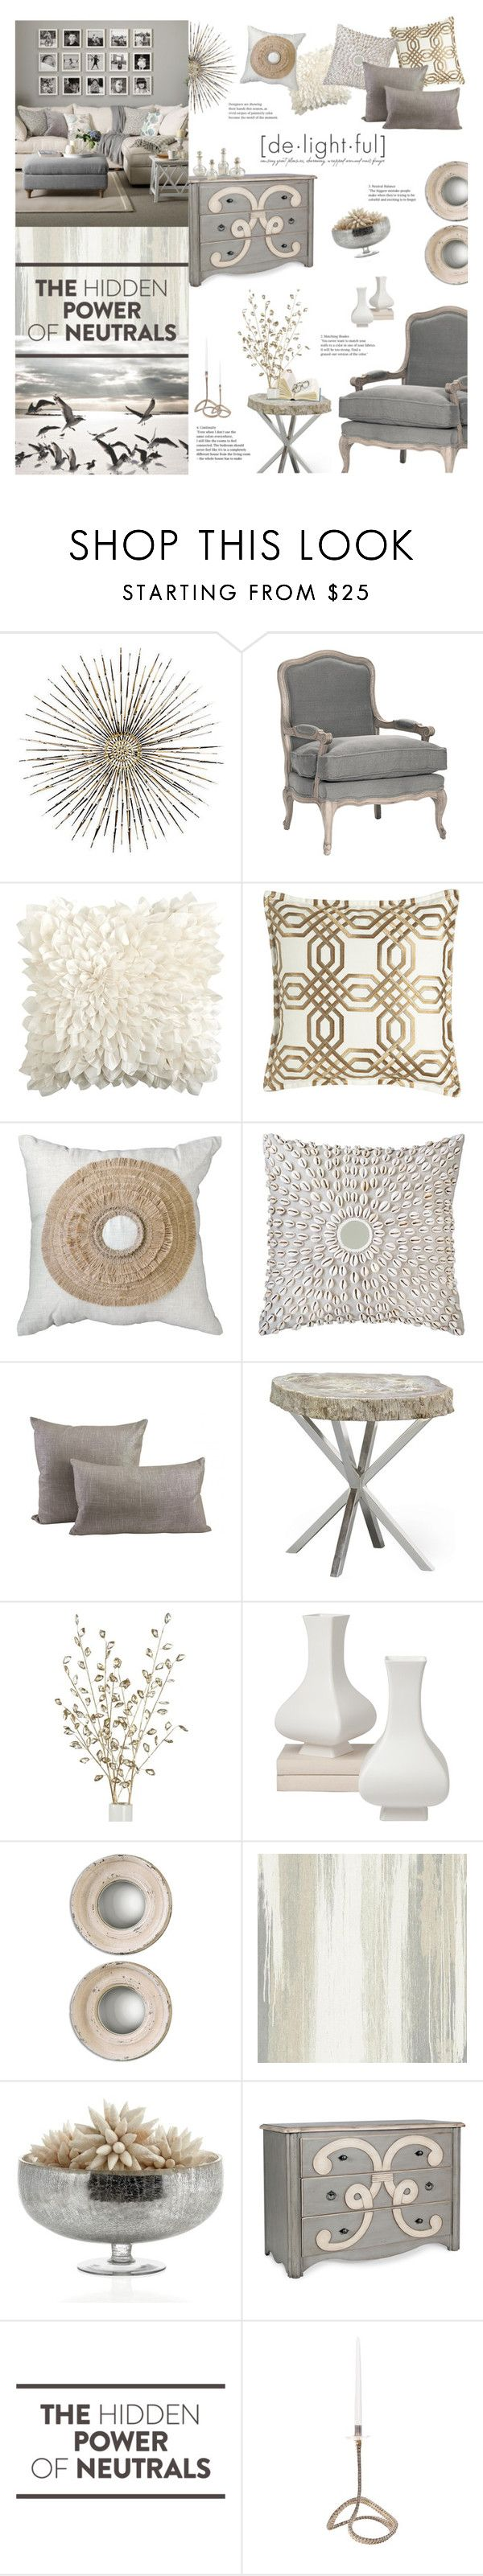 25 Best Ideas About Pier 1 Decor On Pinterest Beach